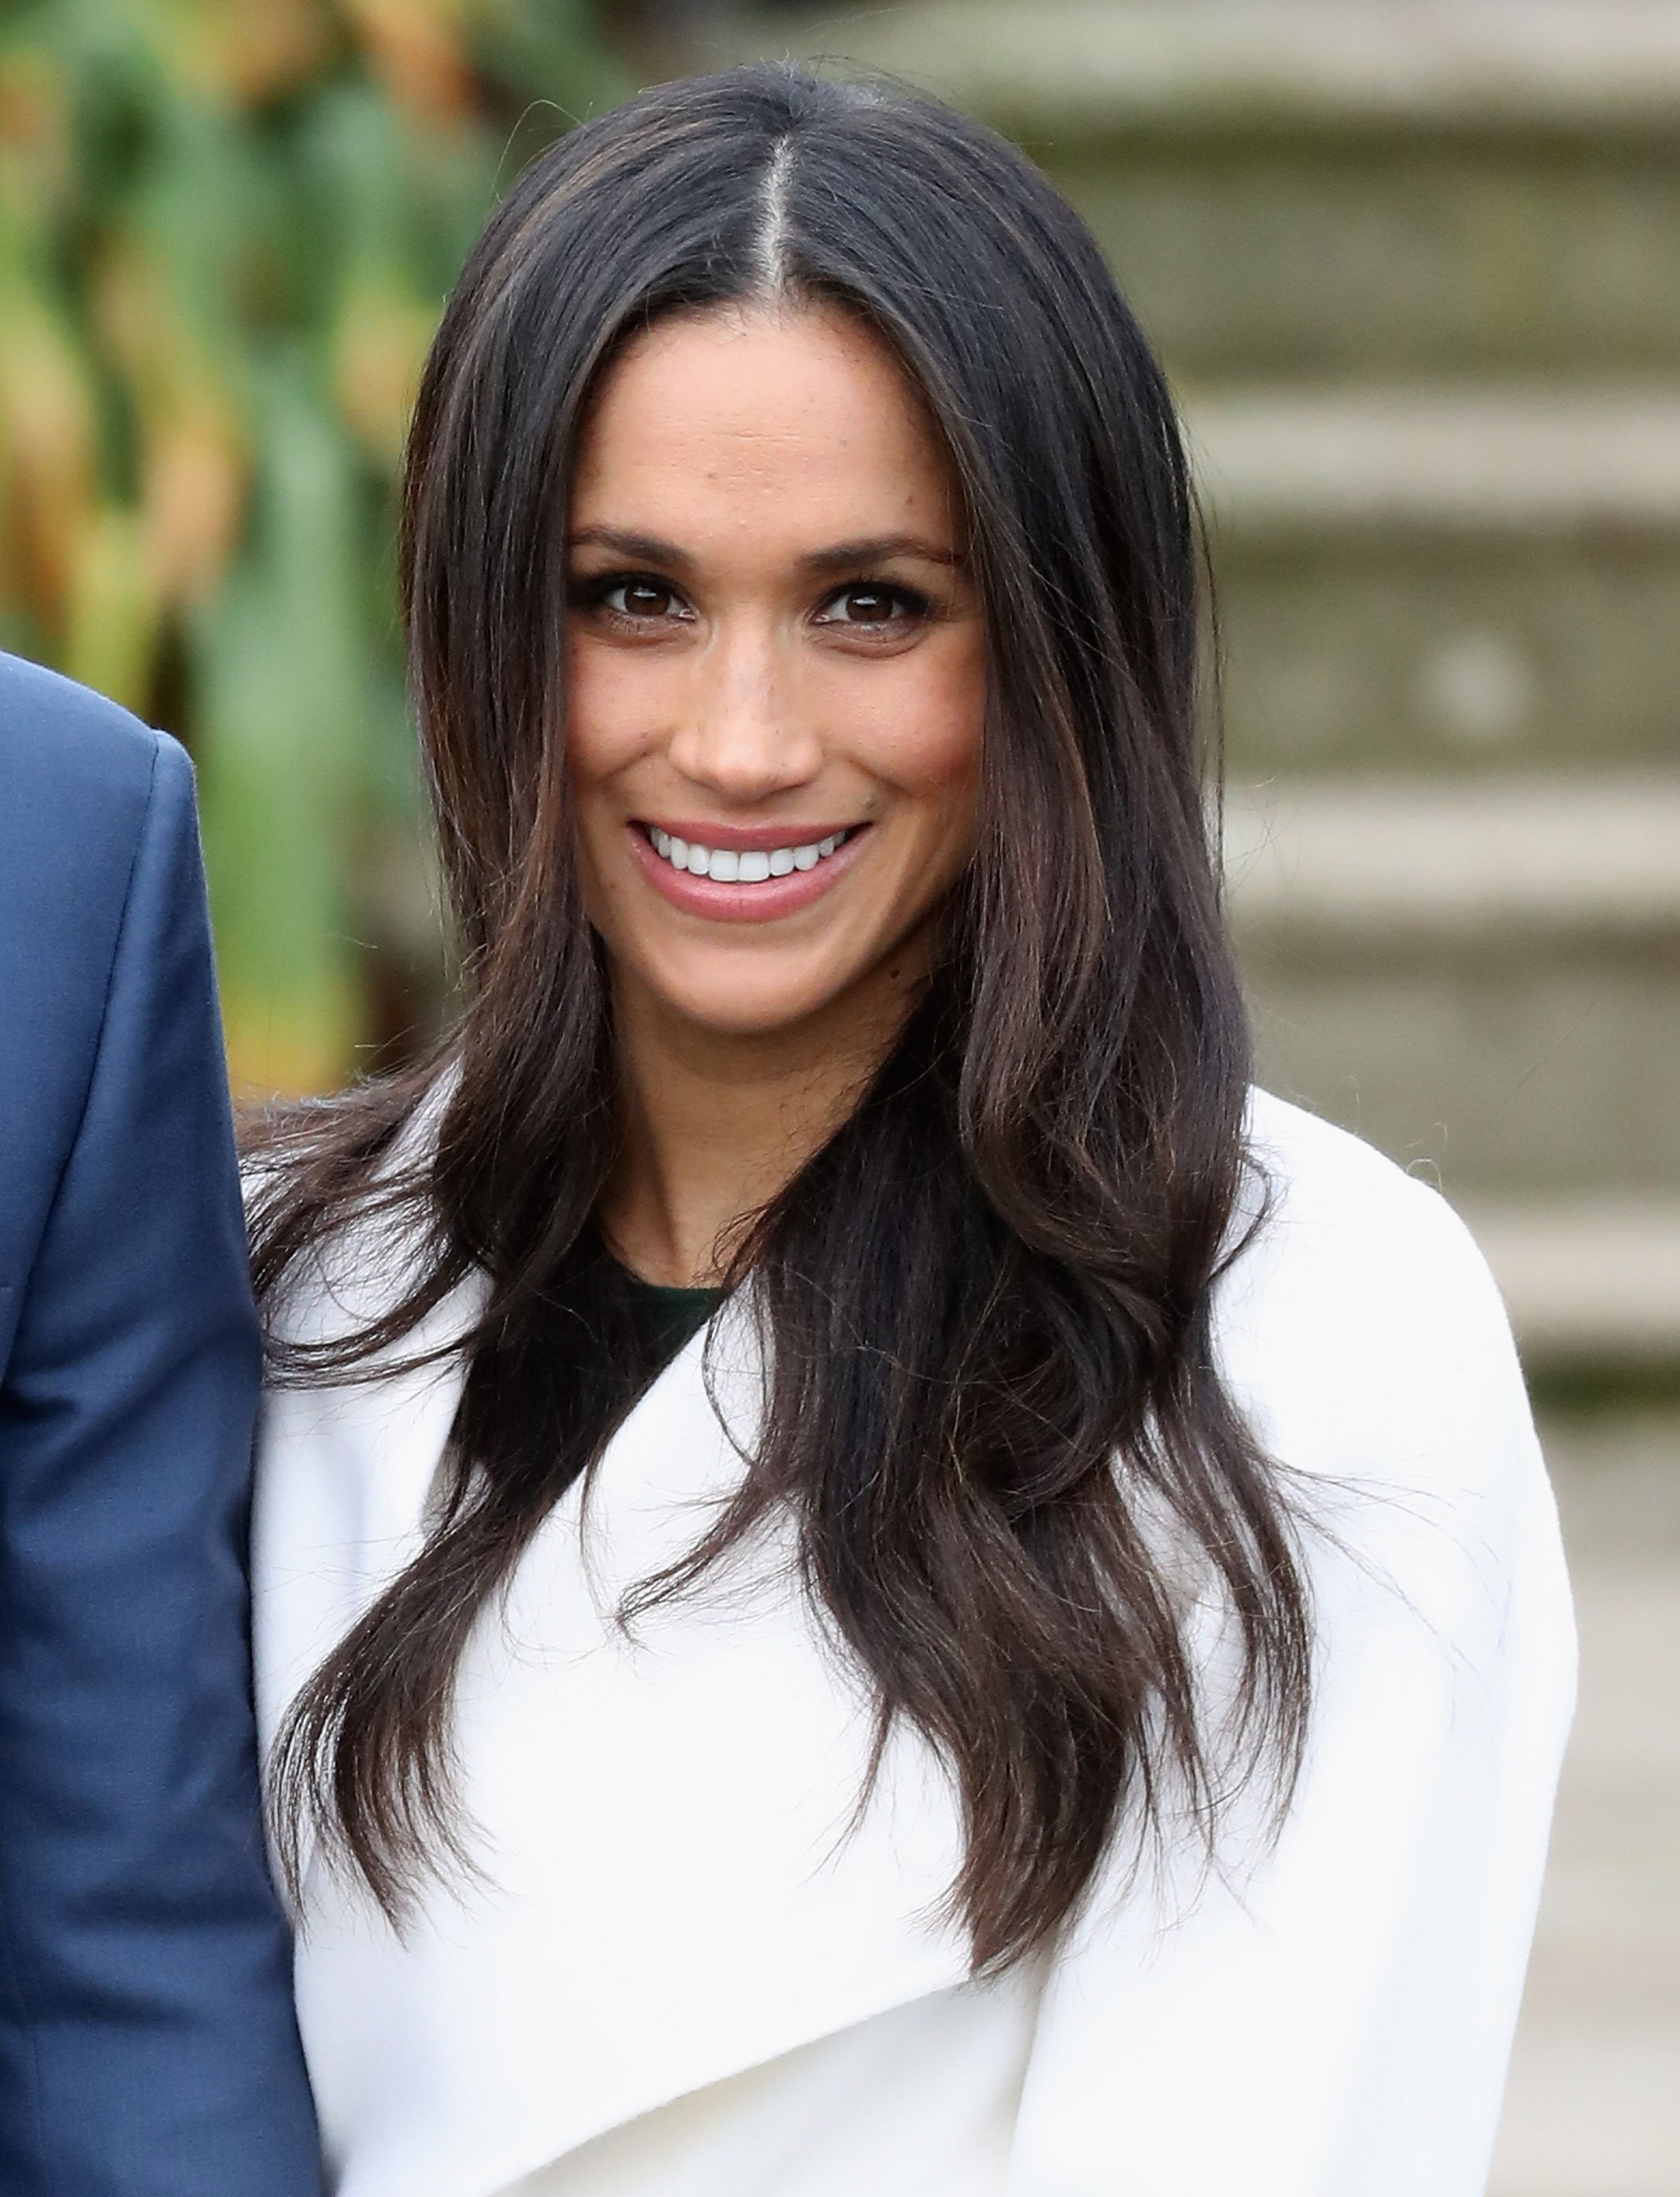 Meghan Markle Just Broke Another Royal Hair Rule Today Lowsidebuns Markle With Low Side Bun Lowsideb Effortless Hairstyles Short Hair Updo Meghan Markle Hair